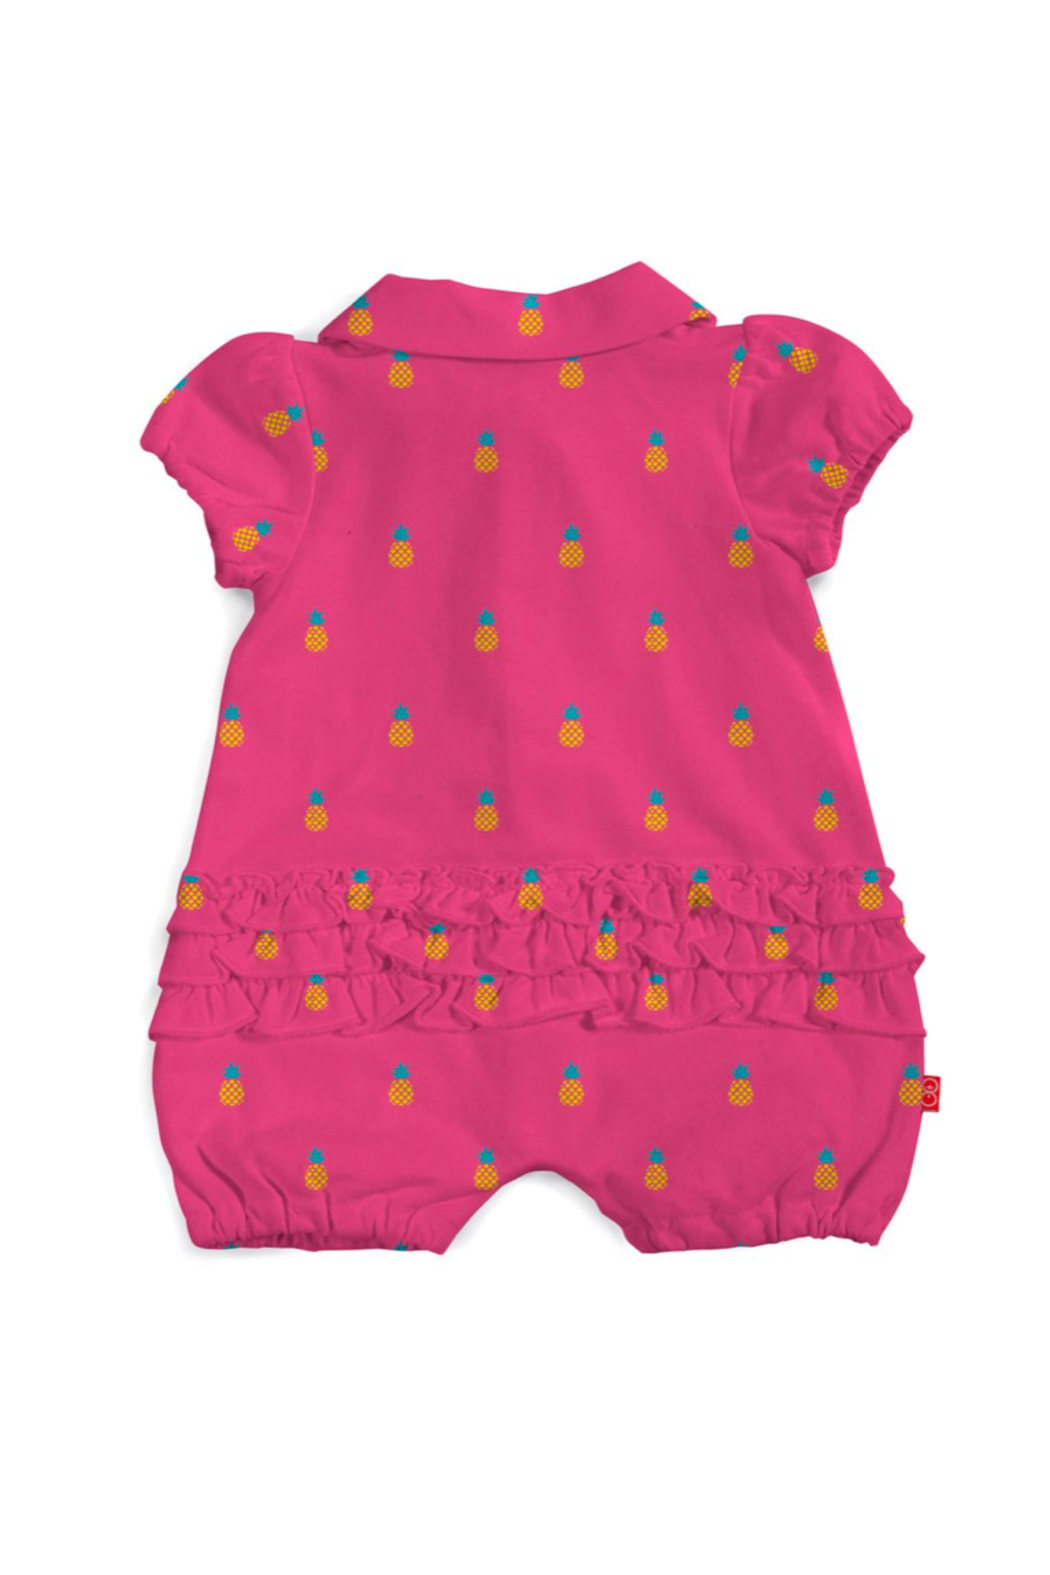 Magnetic Me Pineapples Romper 9-12 - Front Full Image